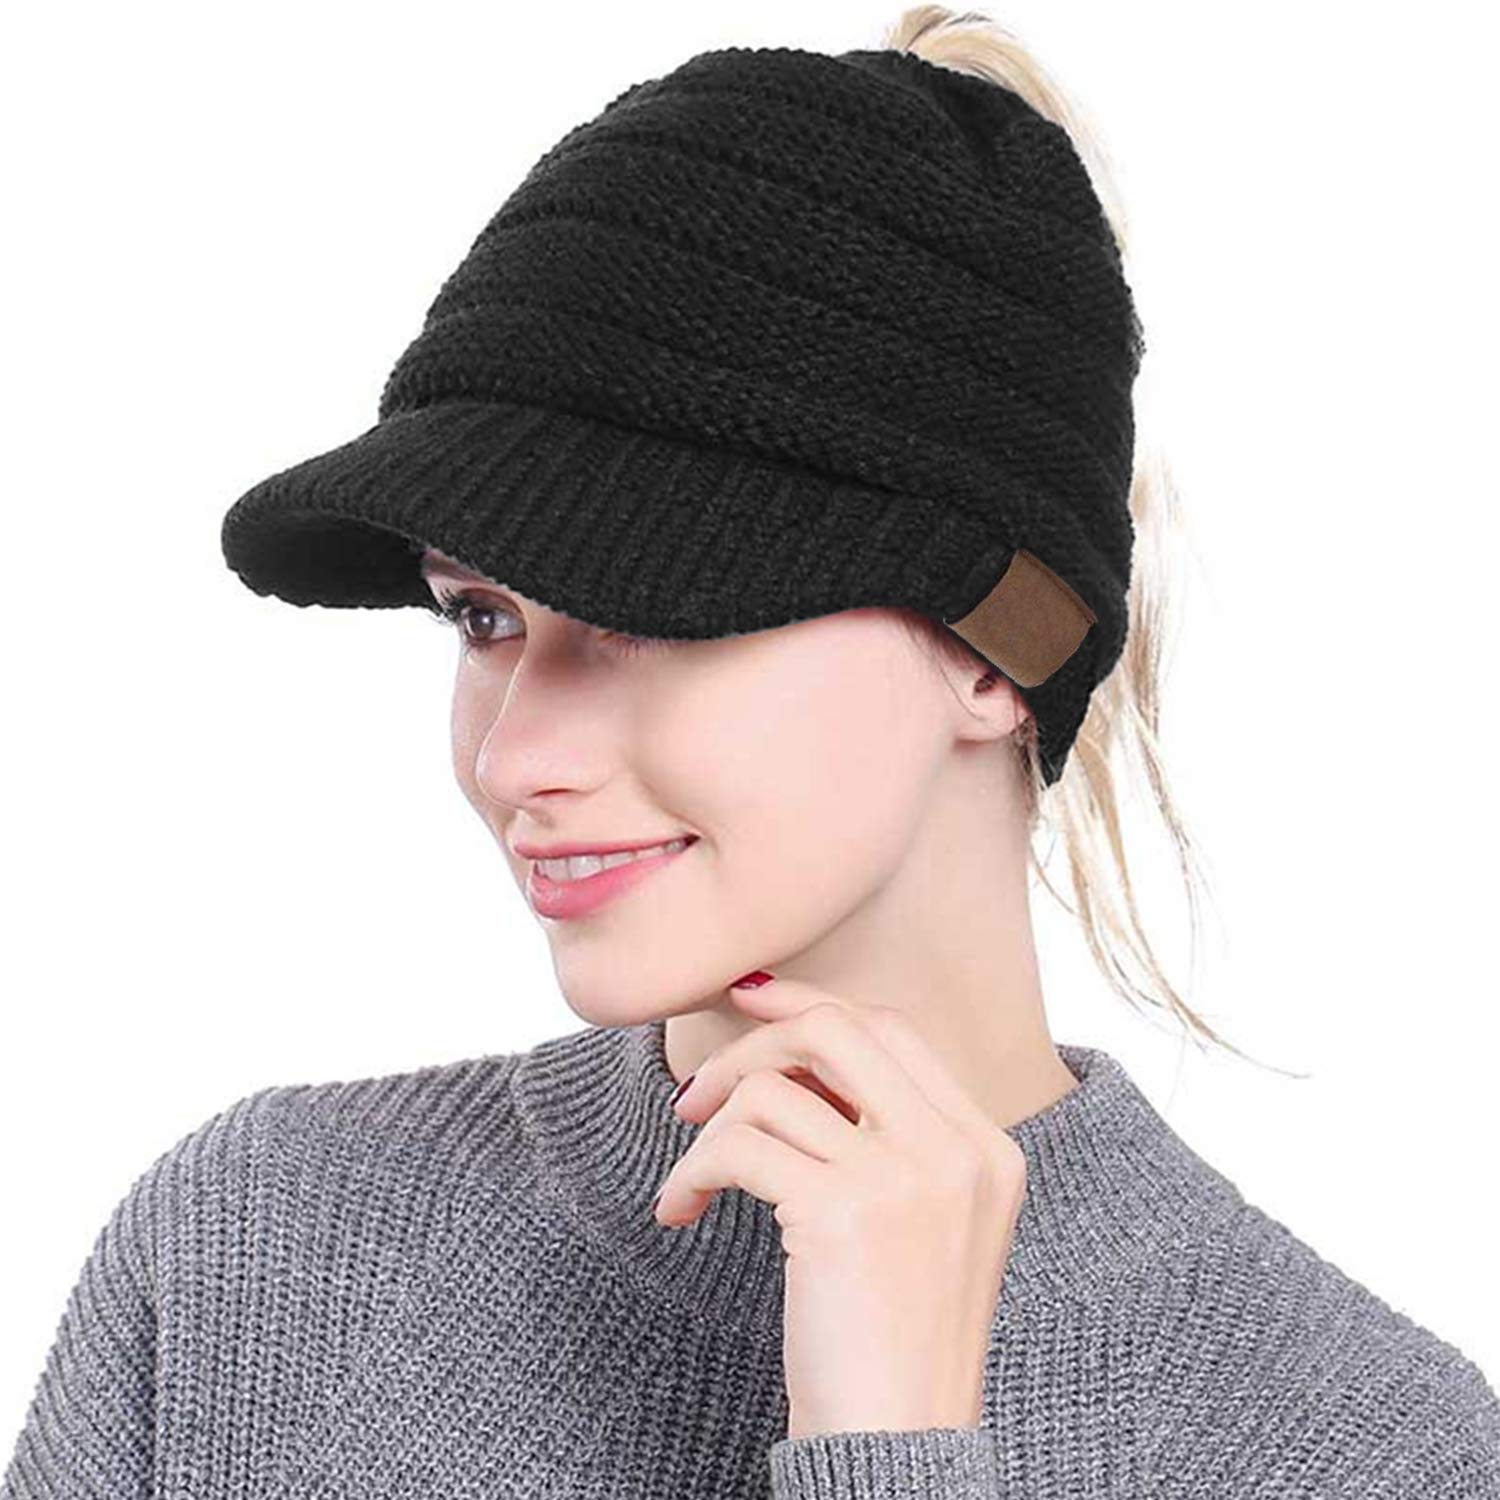 ea67cf97a Libertepe Ponytail Beanie Cable Knit Winter Hat with Visor Hole for Women  and Girls